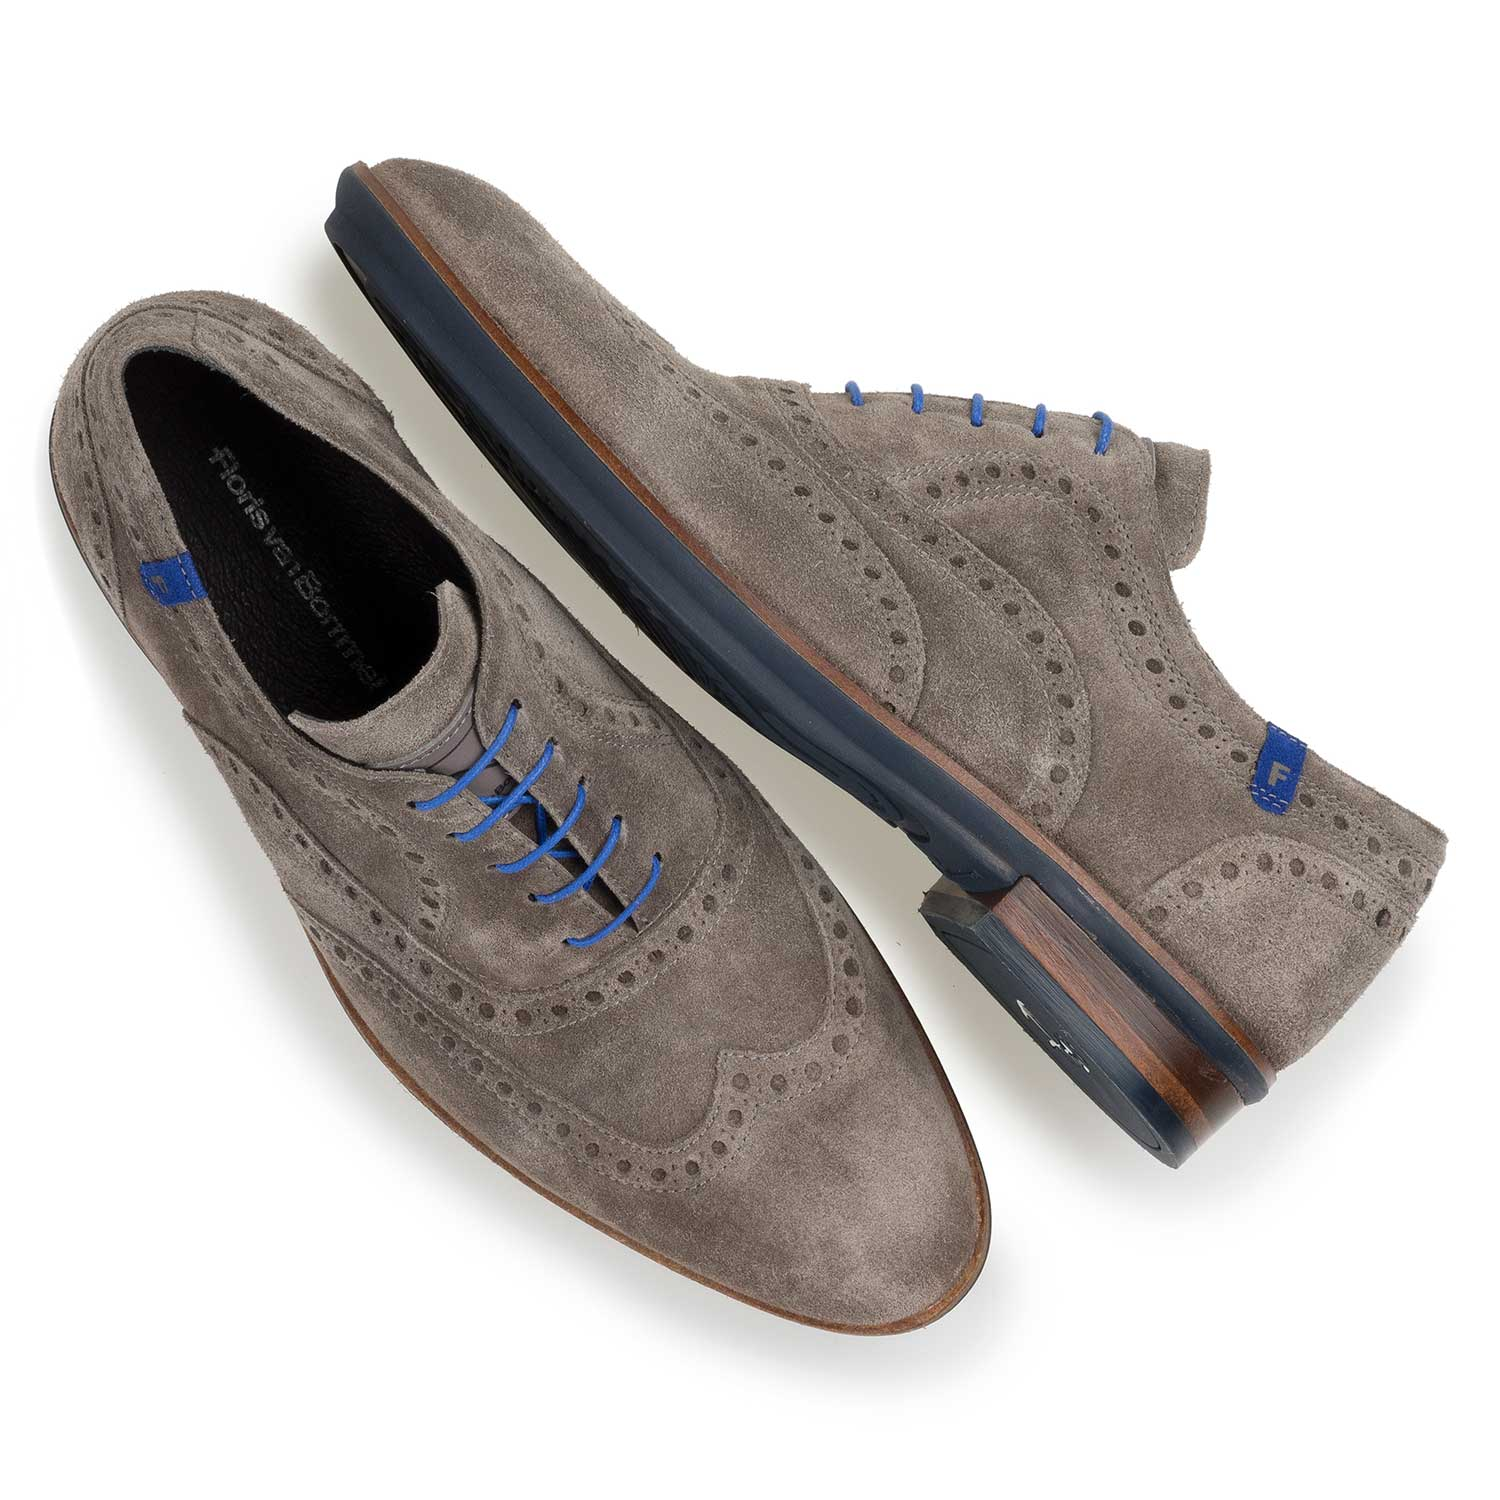 19048/08 - Taupe-coloured suede leather brogue shoe